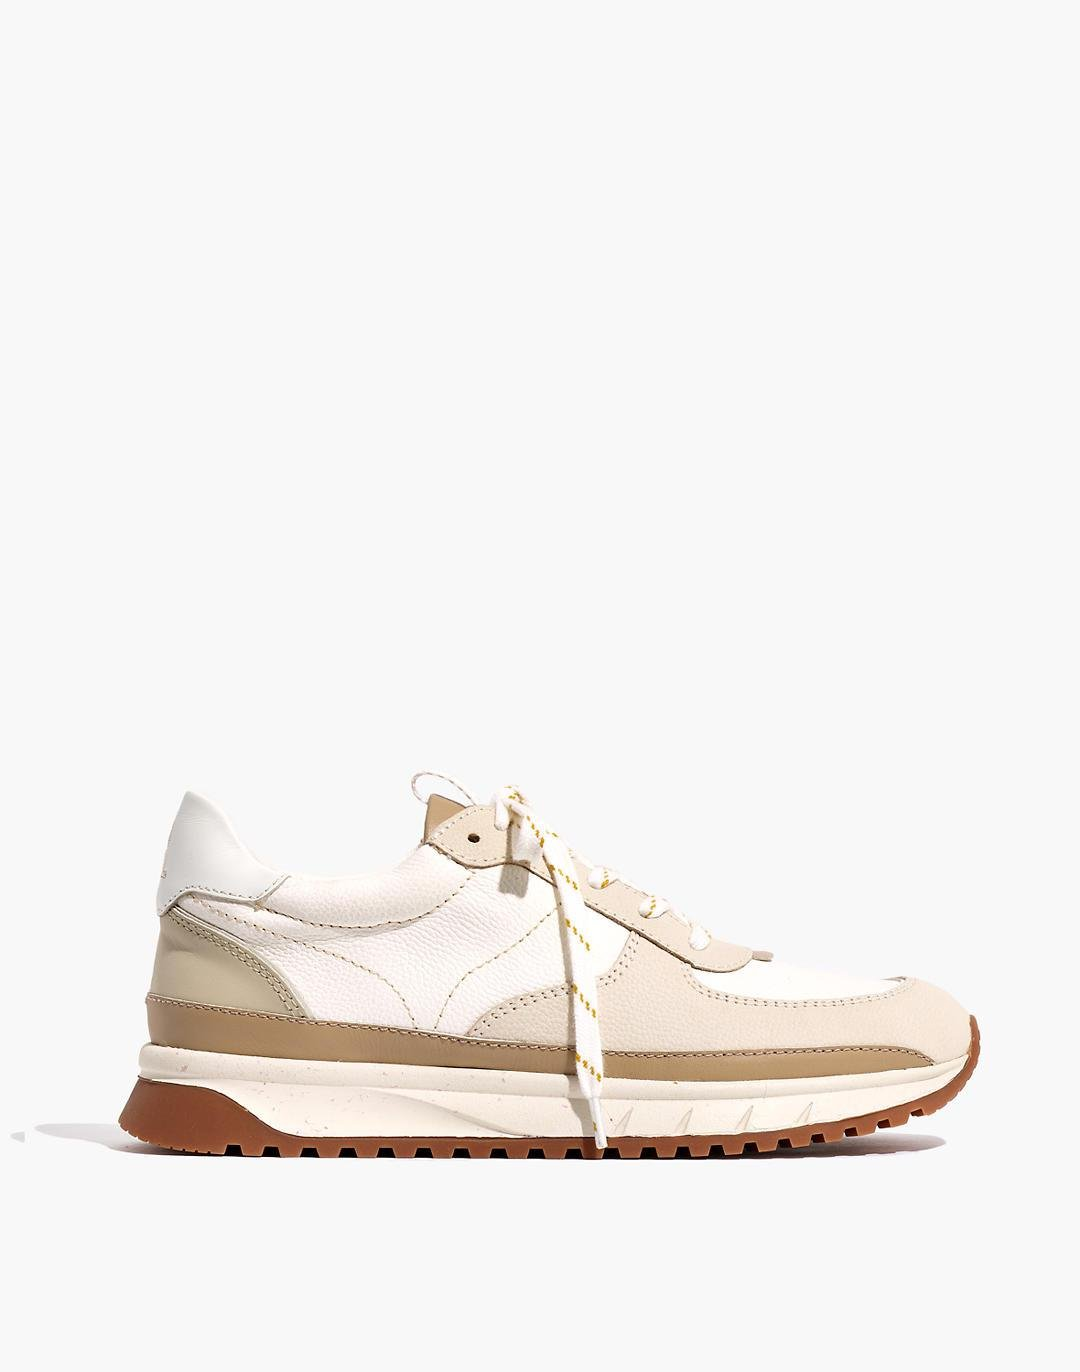 Kickoff Trainer Sneakers in Neutral Colorblock Leather 1